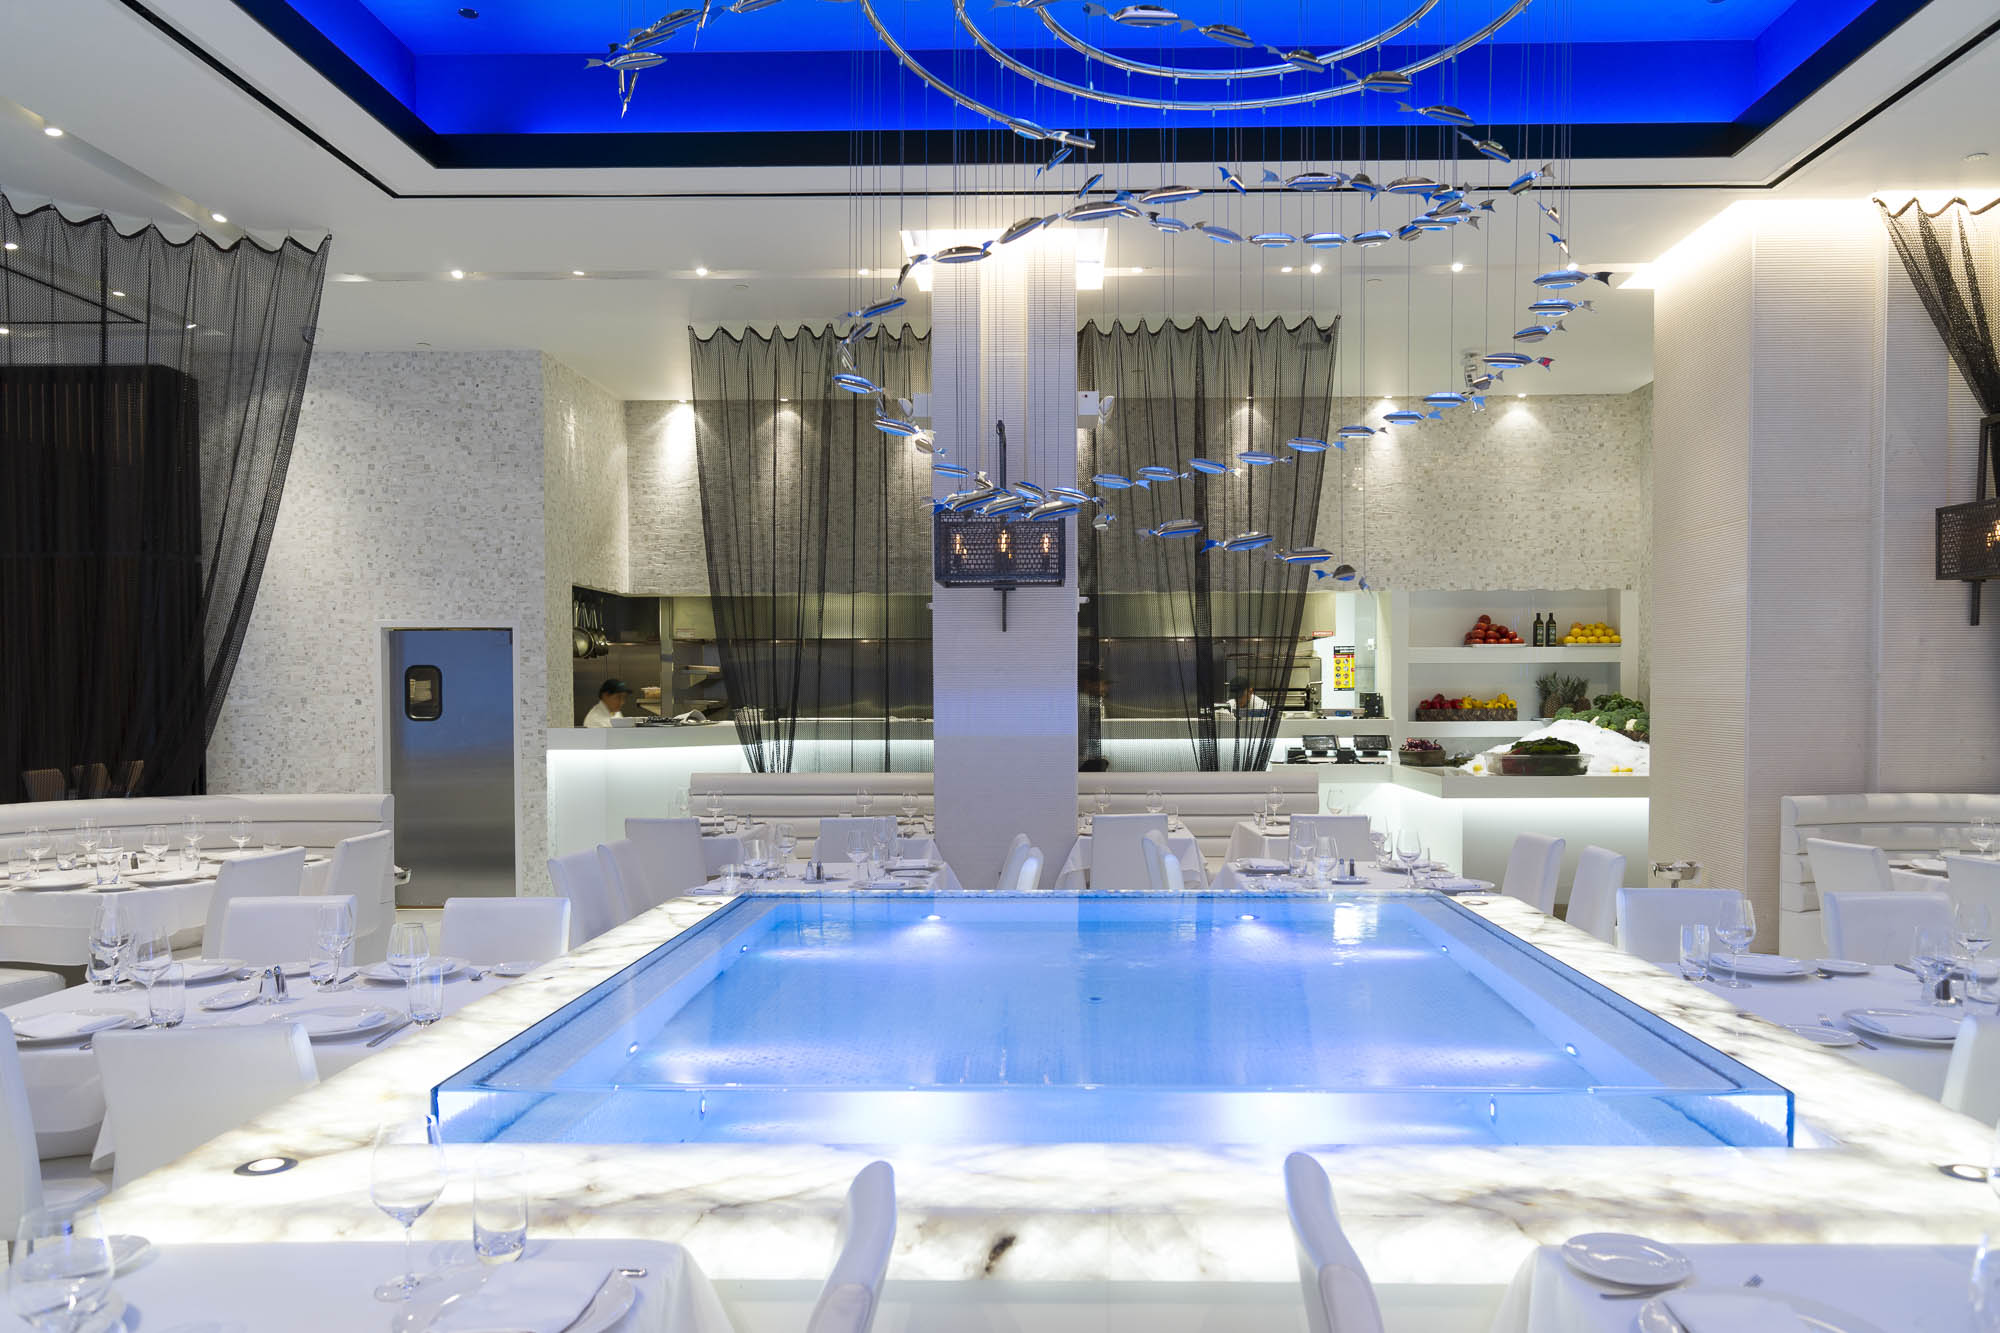 Negative edge reflecting pool at Limani Restaurant, Rockefeller Center, New York City